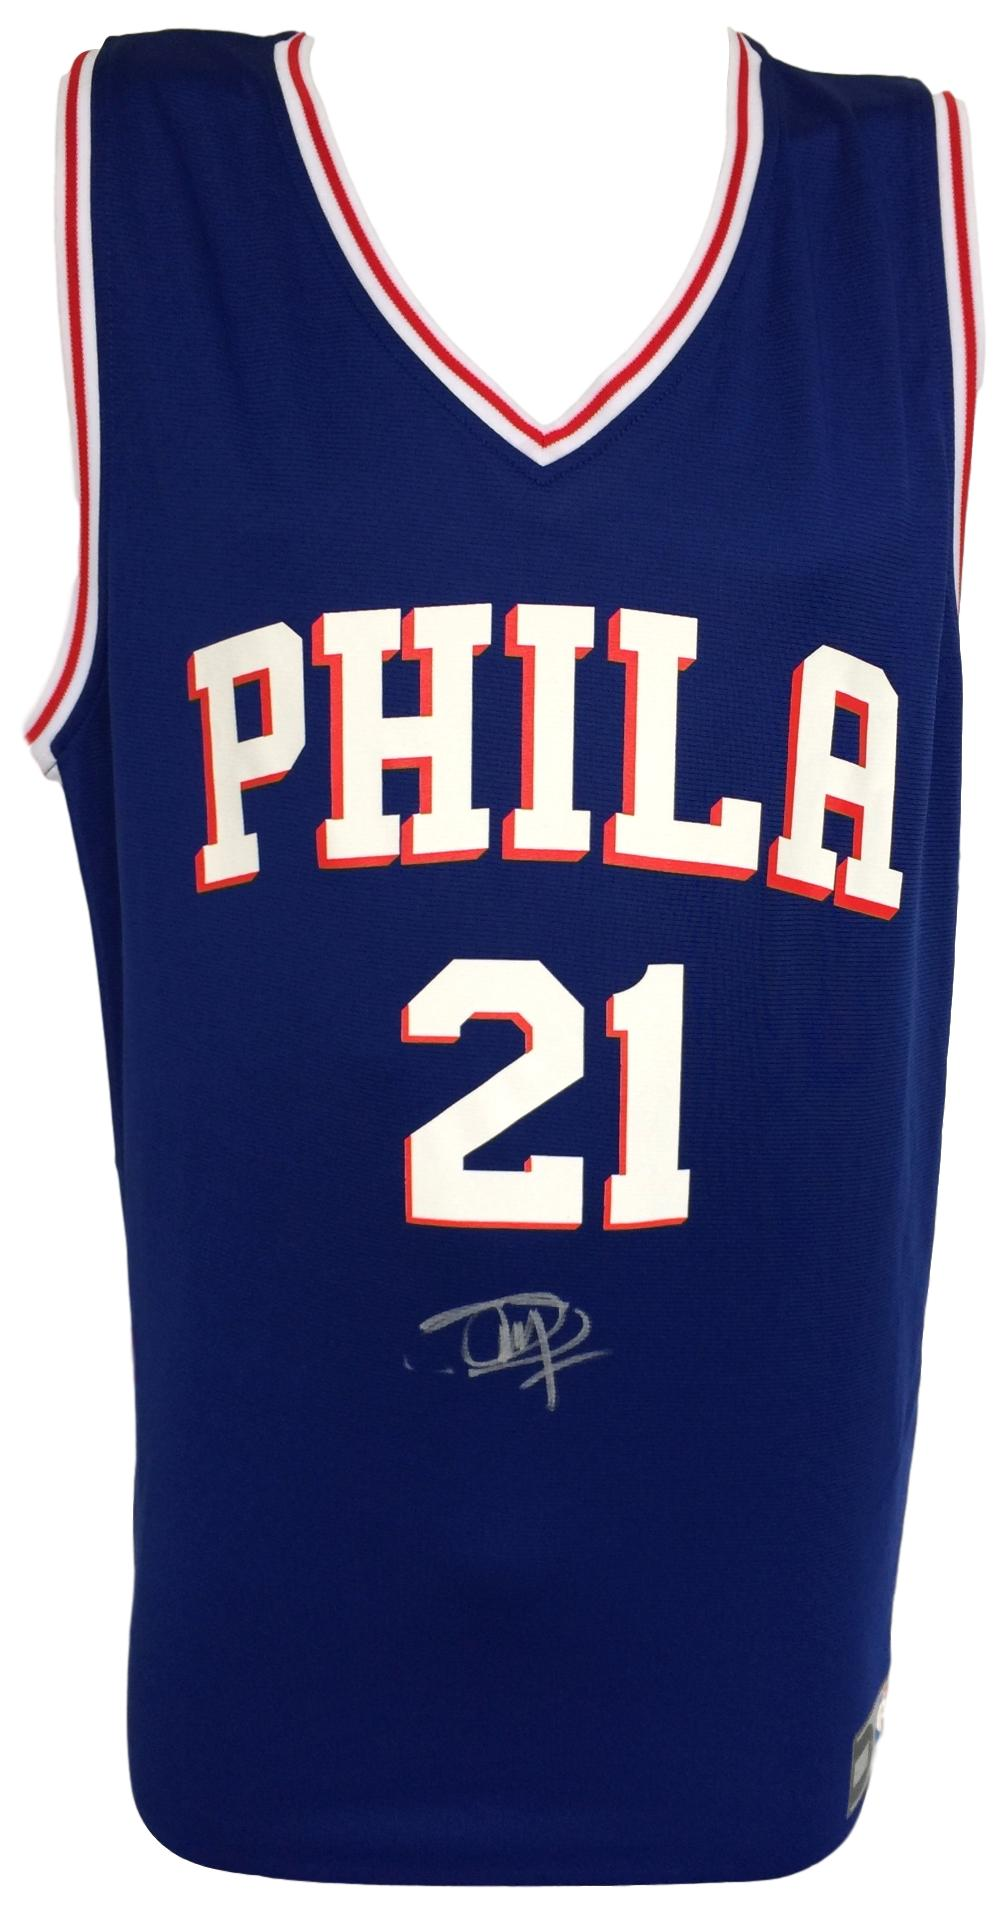 huge selection of 279a5 3d635 Details about Joel Embiid Signed Twice Philadelphia 76ers Blue Nike Replica  Jersey Fanatics